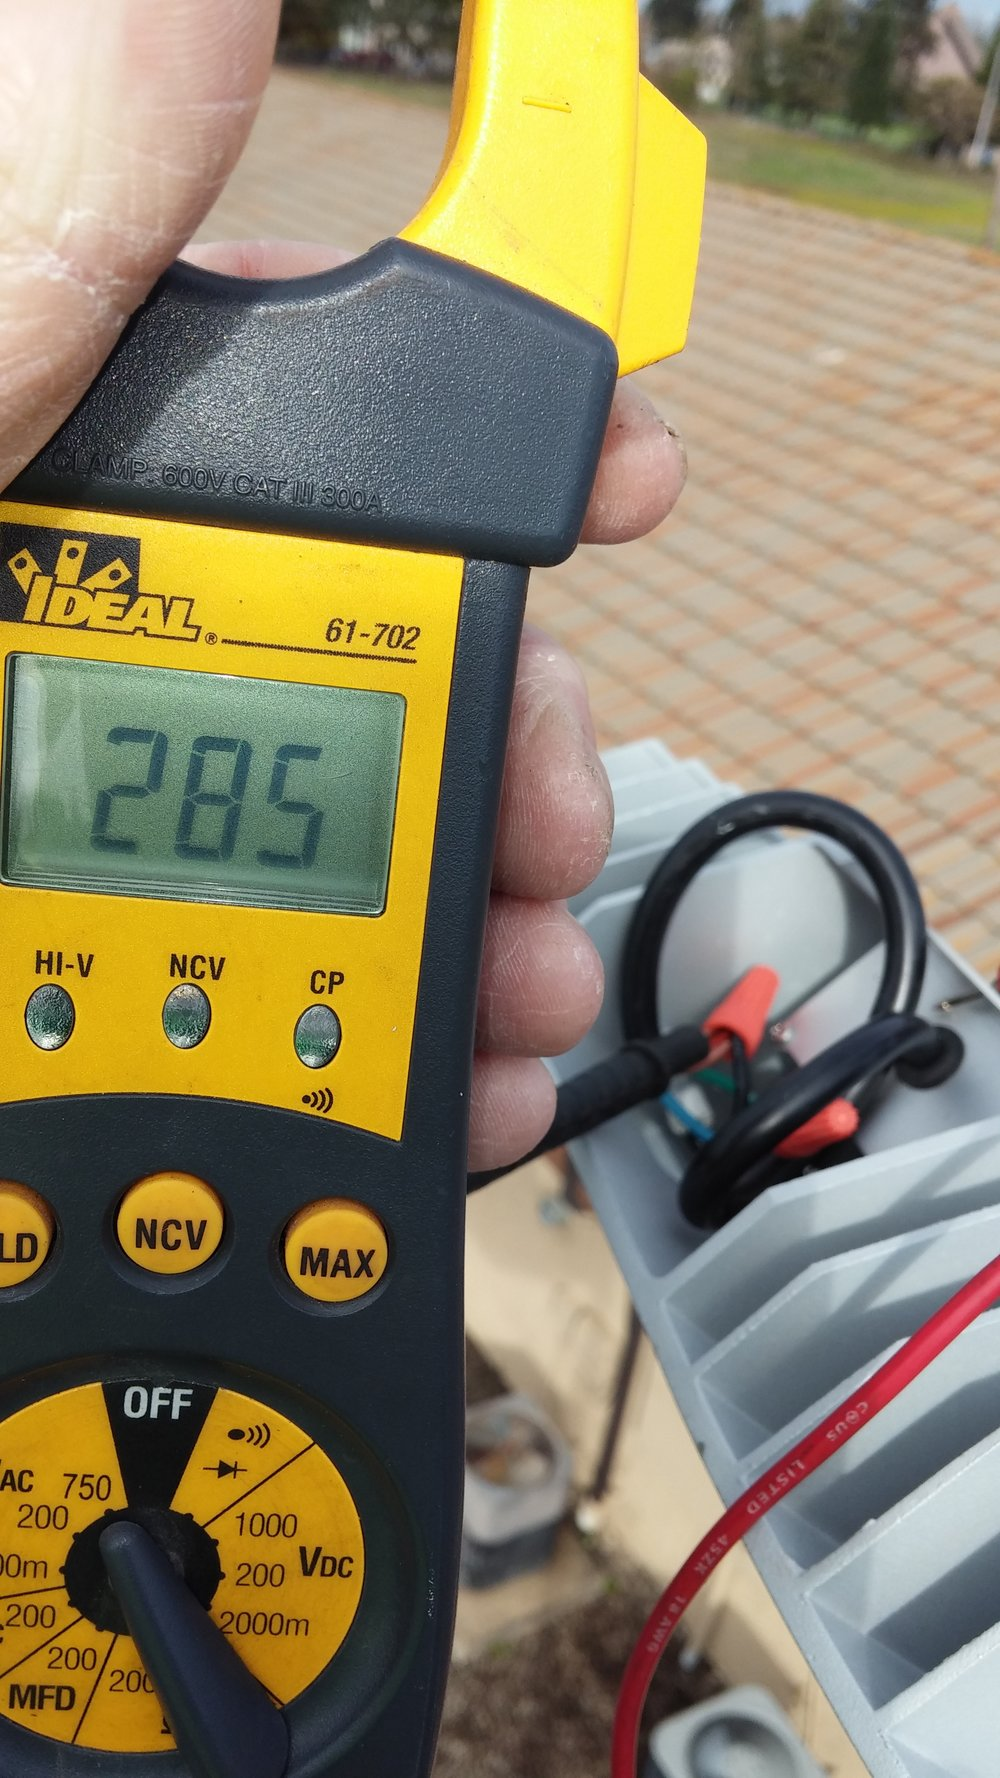 Amp Draw Measuring - We measure the amps per electrical device to see if they are in specs of the original design on manufactures requirements.